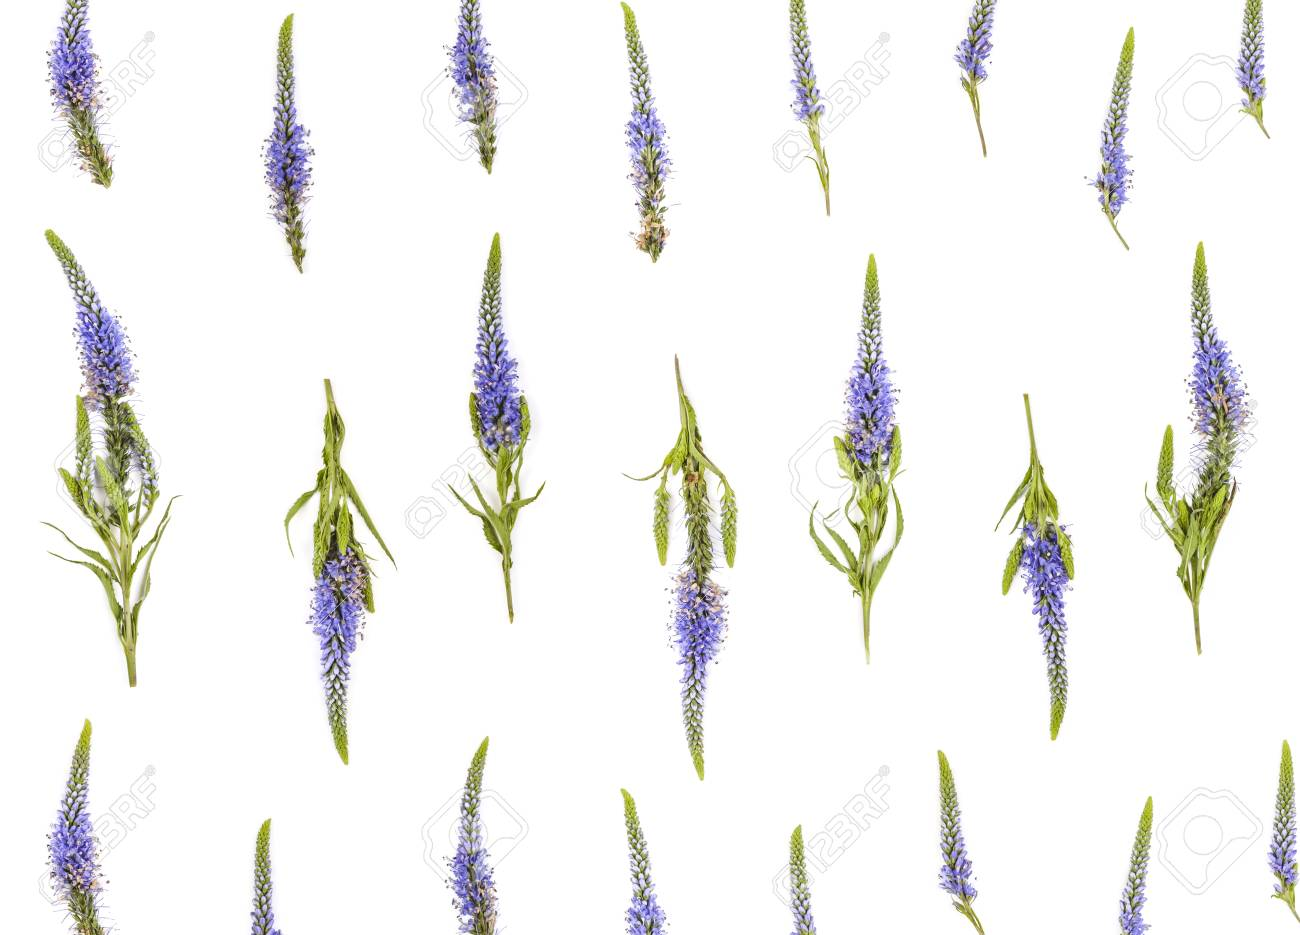 Floral Pattern Made Of Veronica Flowers On White Background Stock